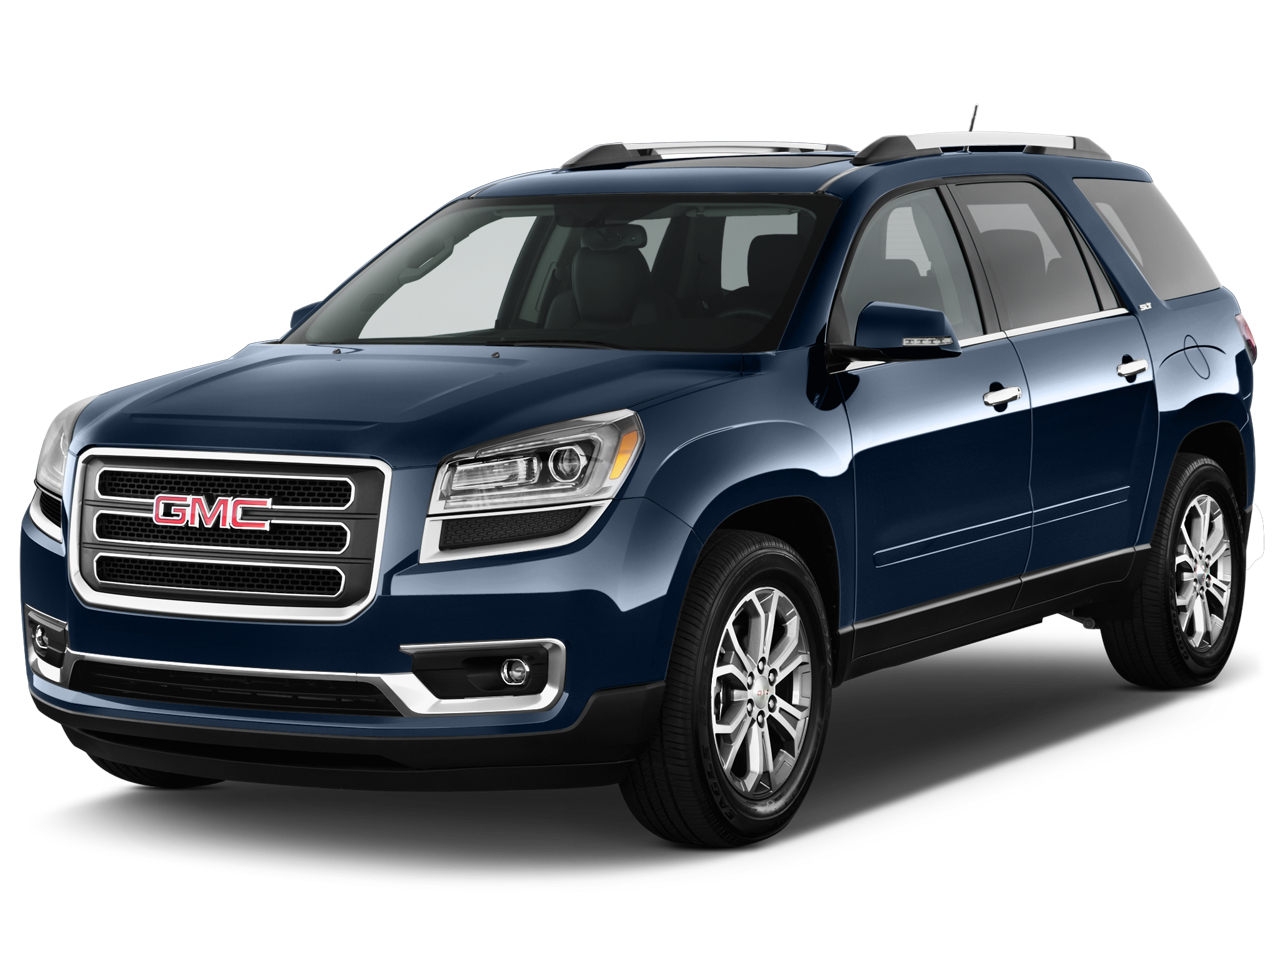 new 2017 gmc acadia limited limited near boone ia pat. Black Bedroom Furniture Sets. Home Design Ideas